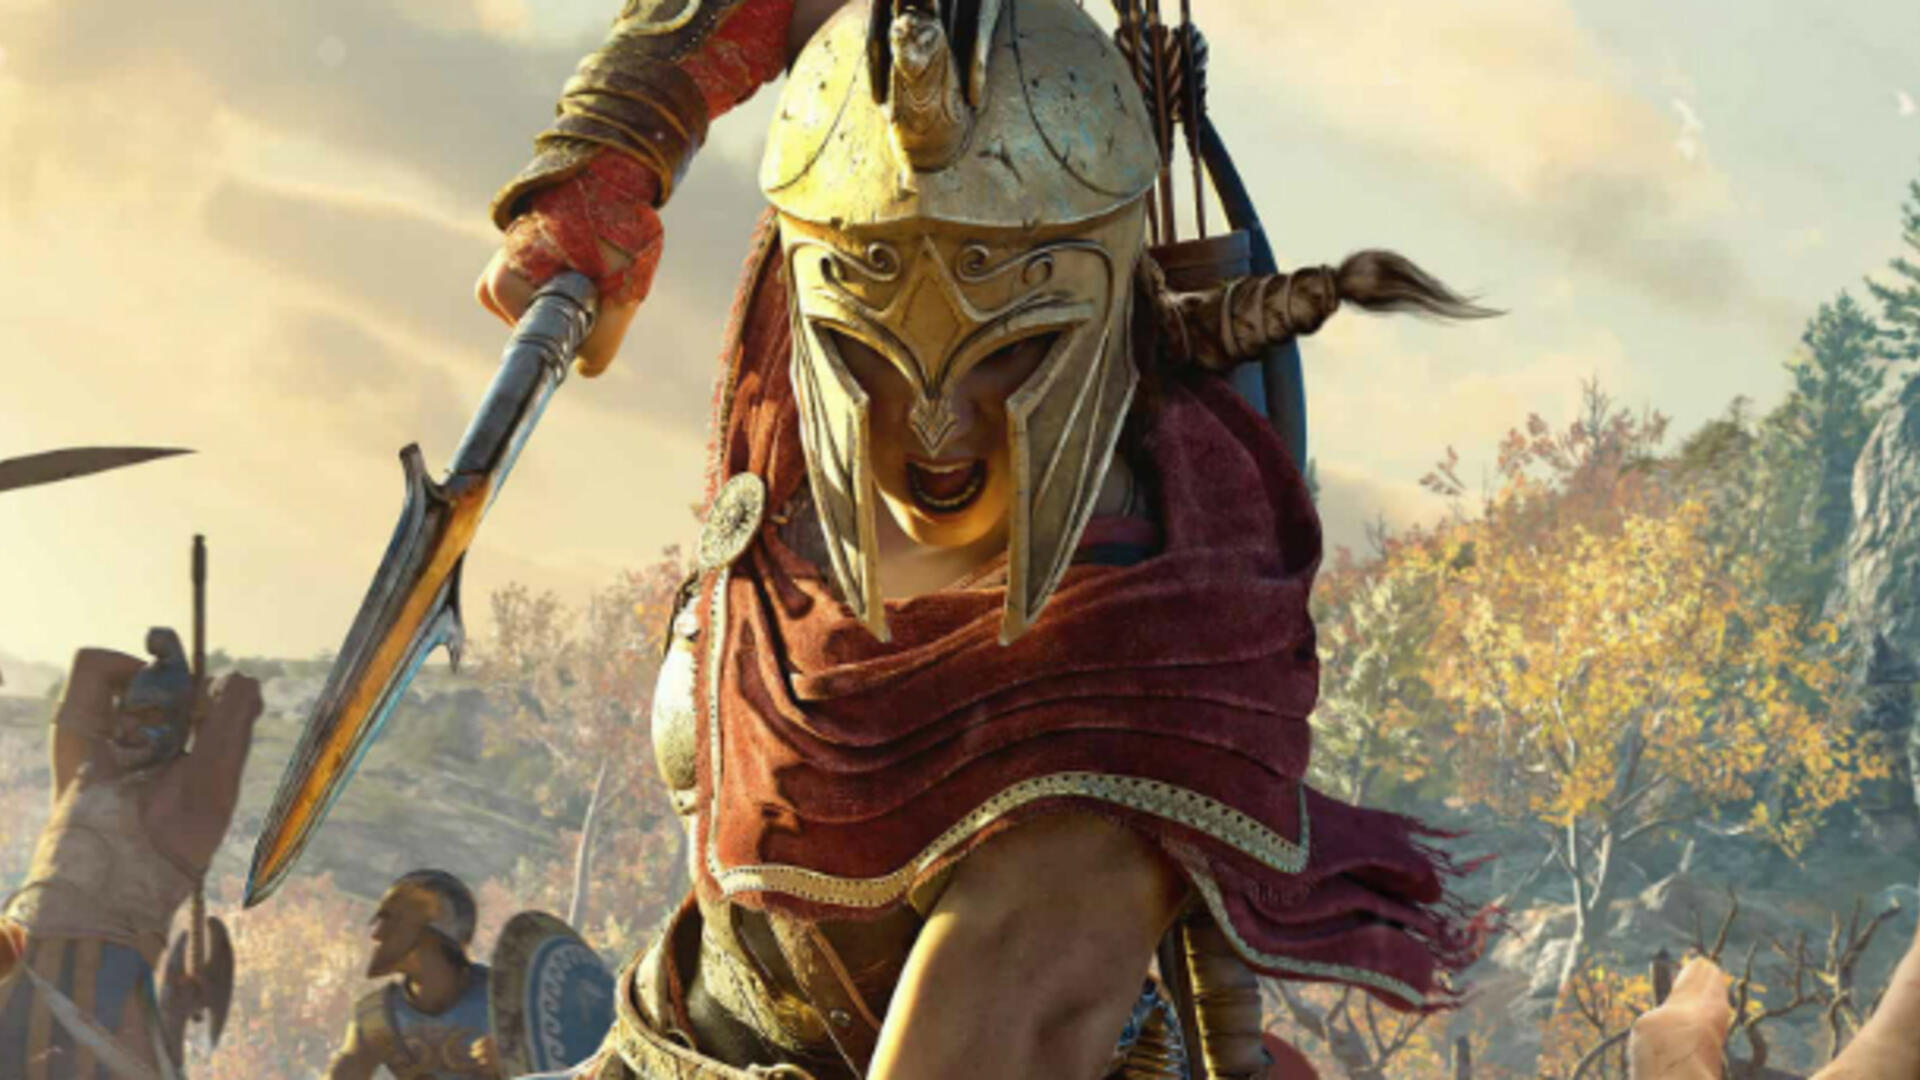 Assassin's Creed Odyssey Gets New Visual Customization Options This Month